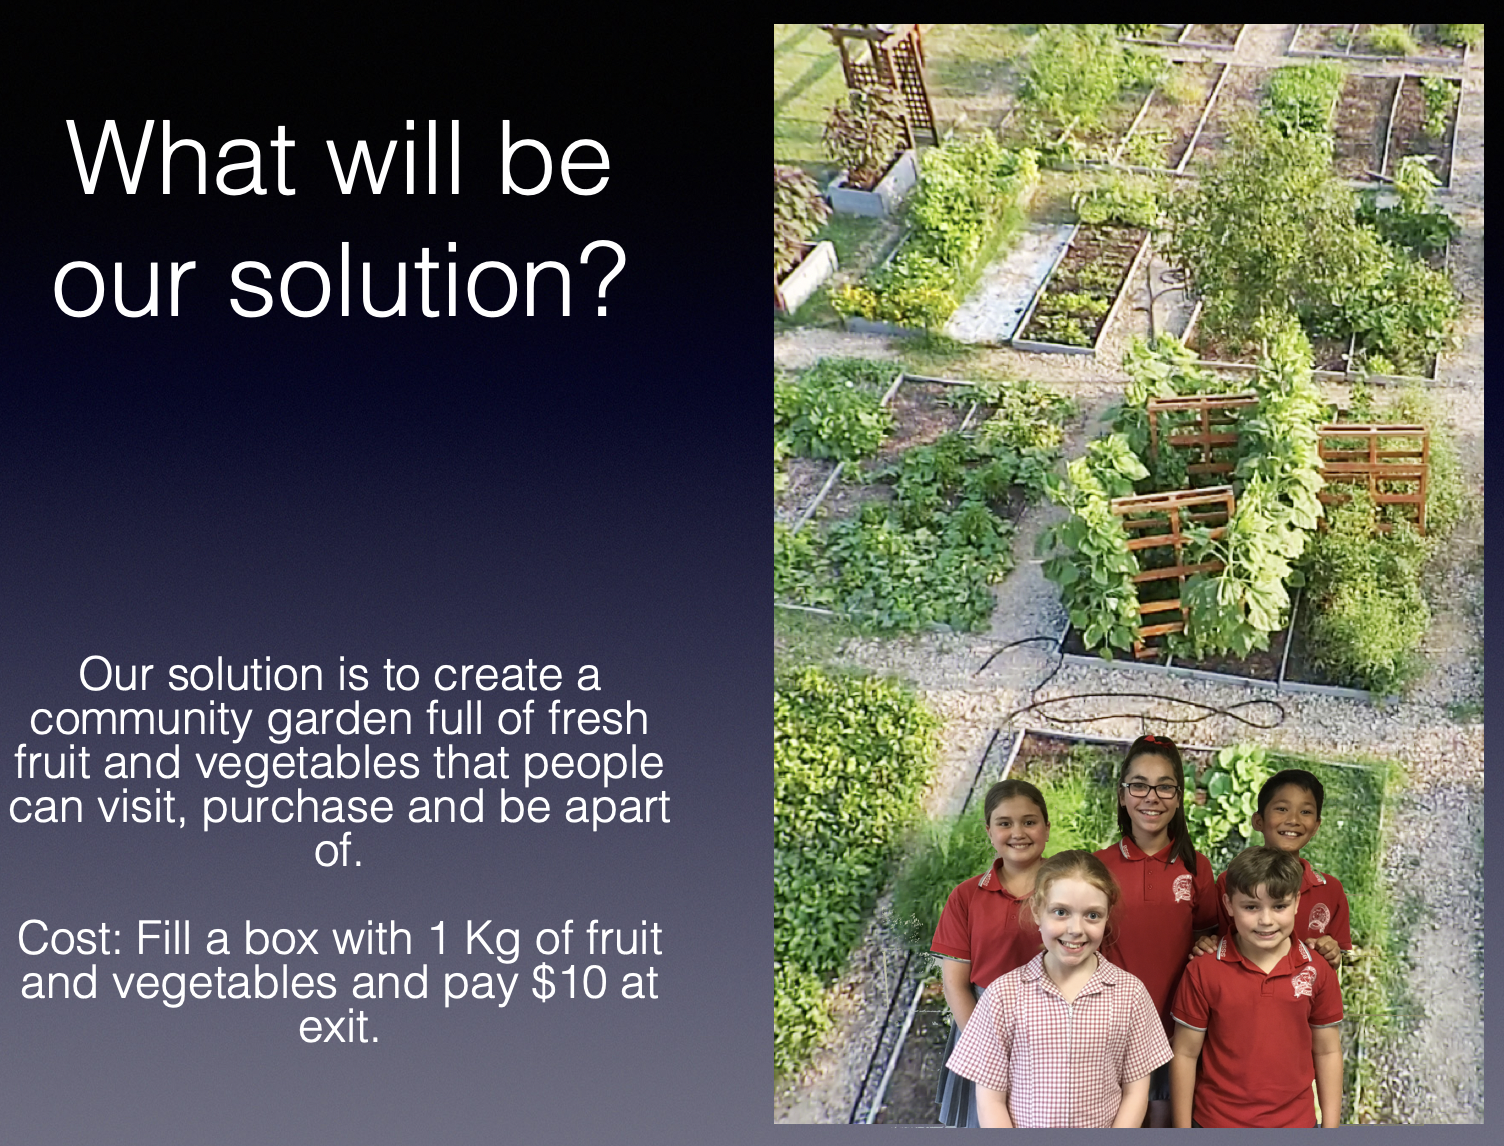 Our solution is a community garden in the Birkdale South area. Fill a box with 1kg of fruit and vegetables, and pay $10 at the exit.